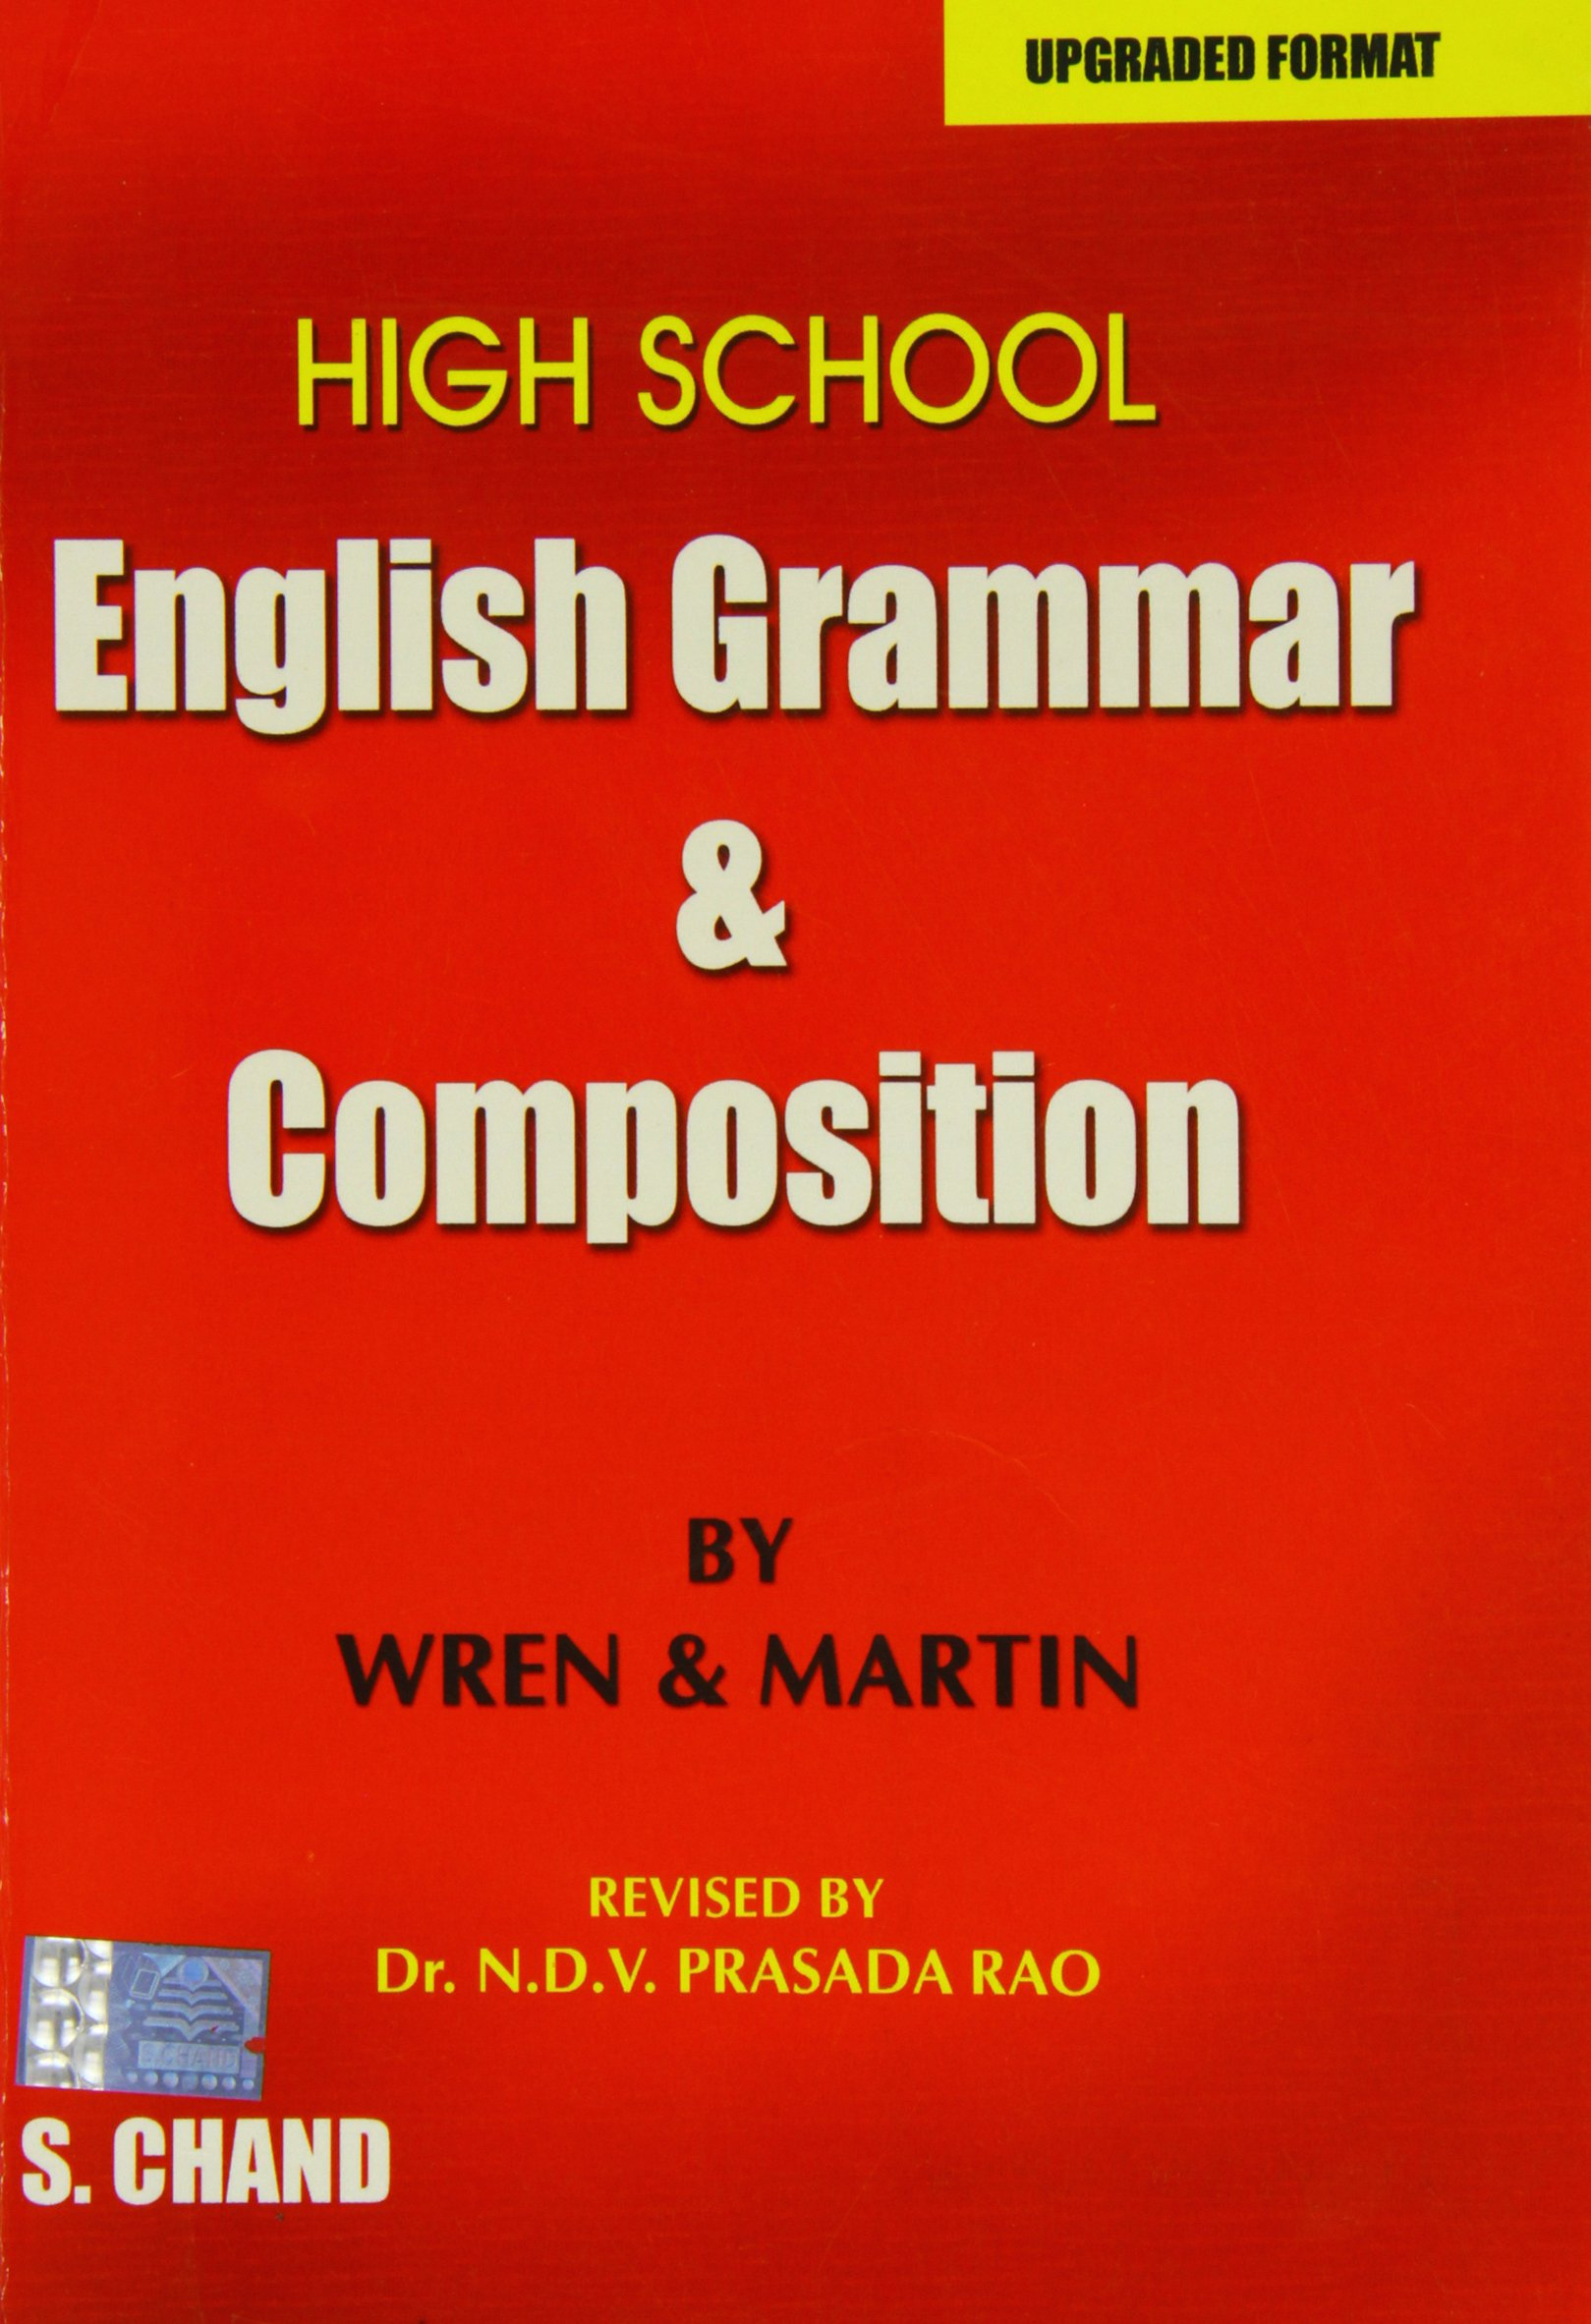 High school english grammar and composition p c wren h martin n d v prasada rao 0689724573702 amazon com books